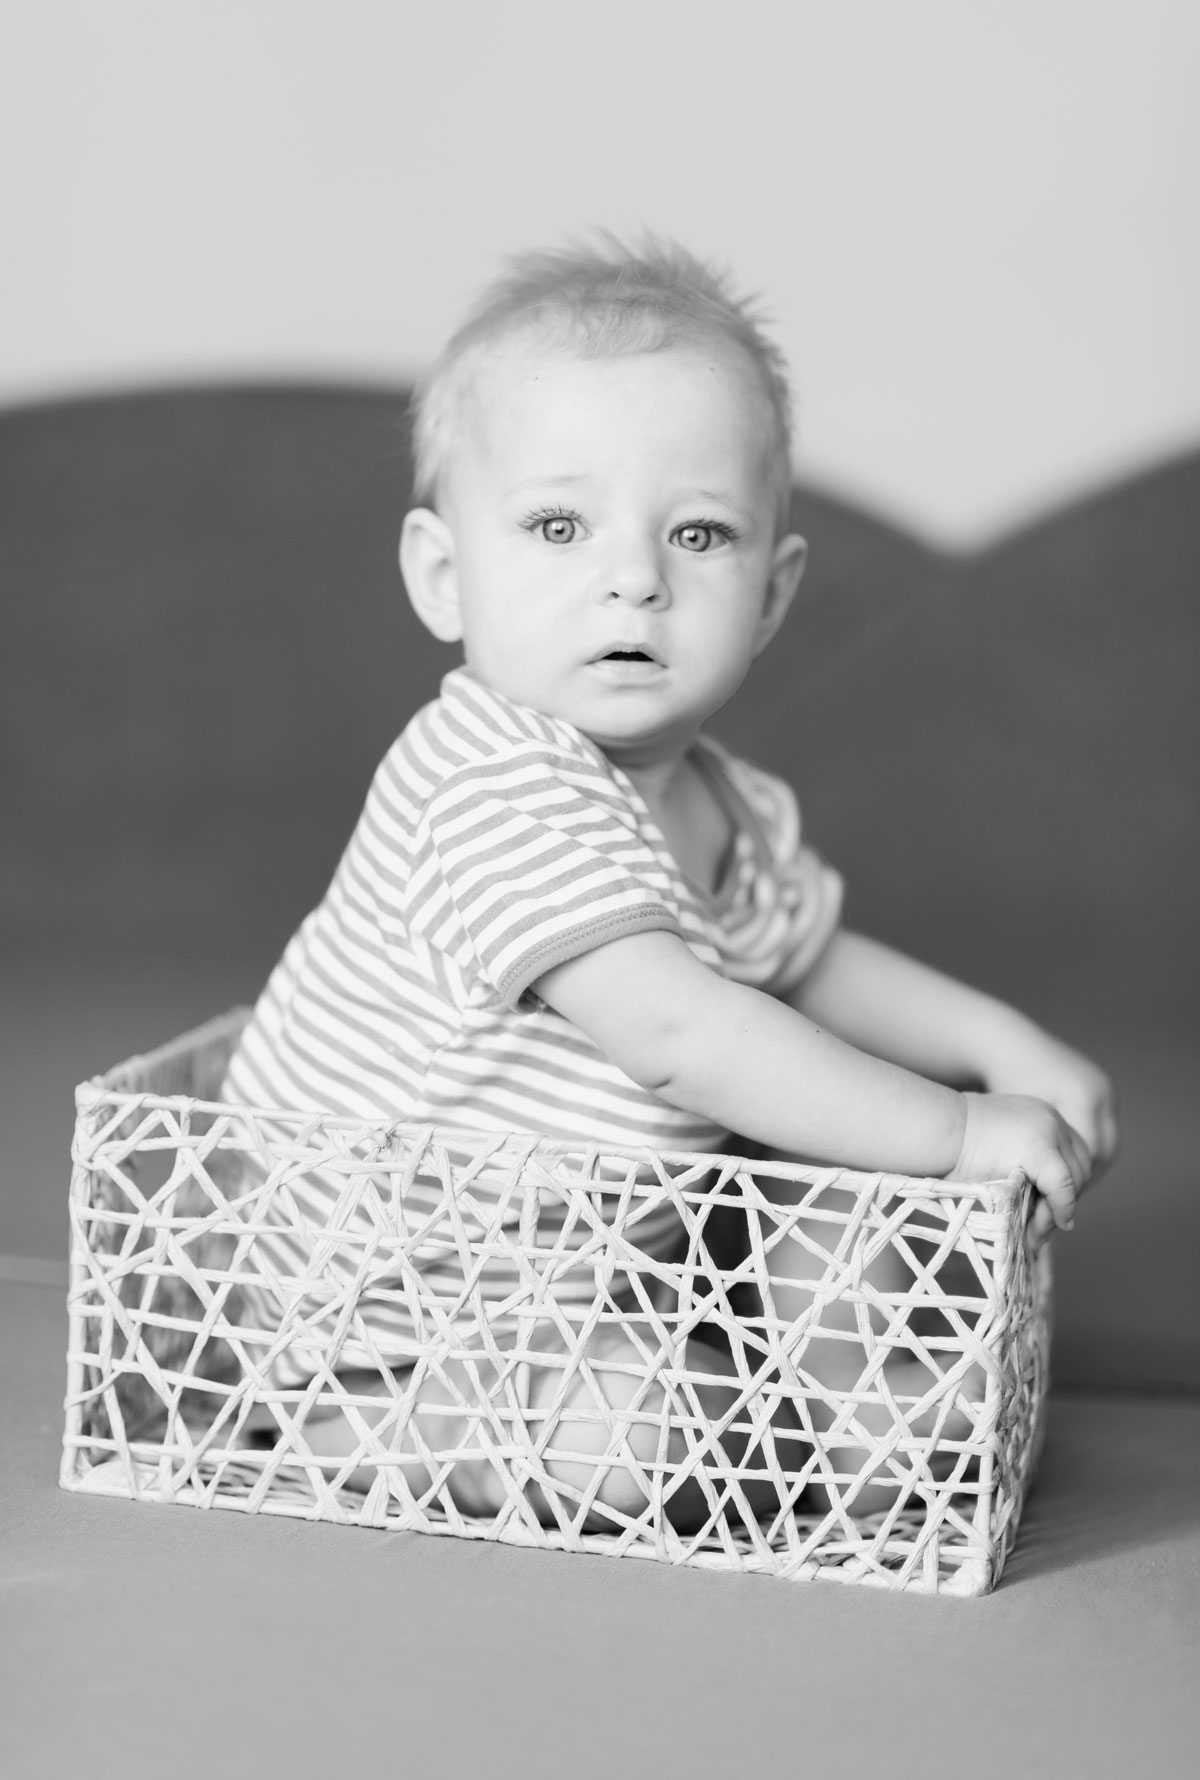 Portrait of baby girl sitting in the basket in black and white